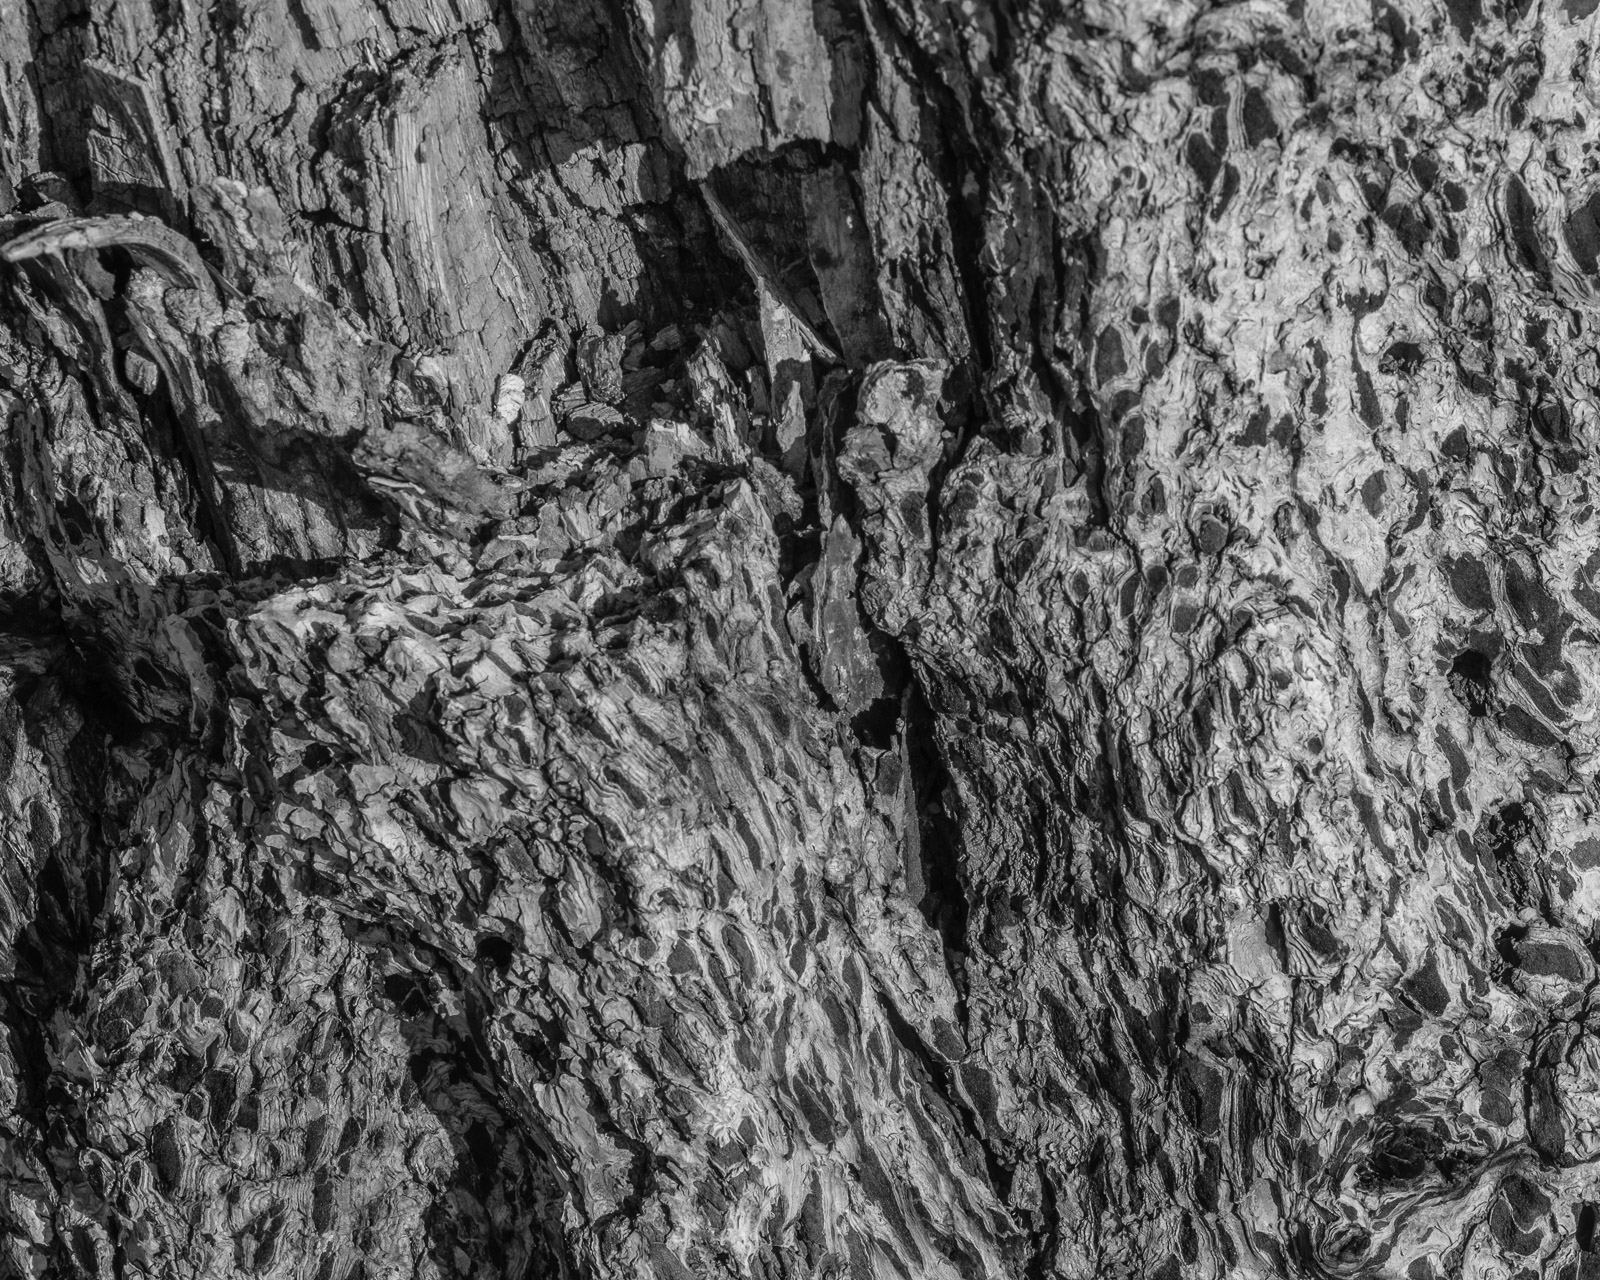 Day 170 365 Day B&W Photo Challenge - Pine Tree Bark charred by forest fire-  Fujifilm X-T3, Acros R Film Simulation